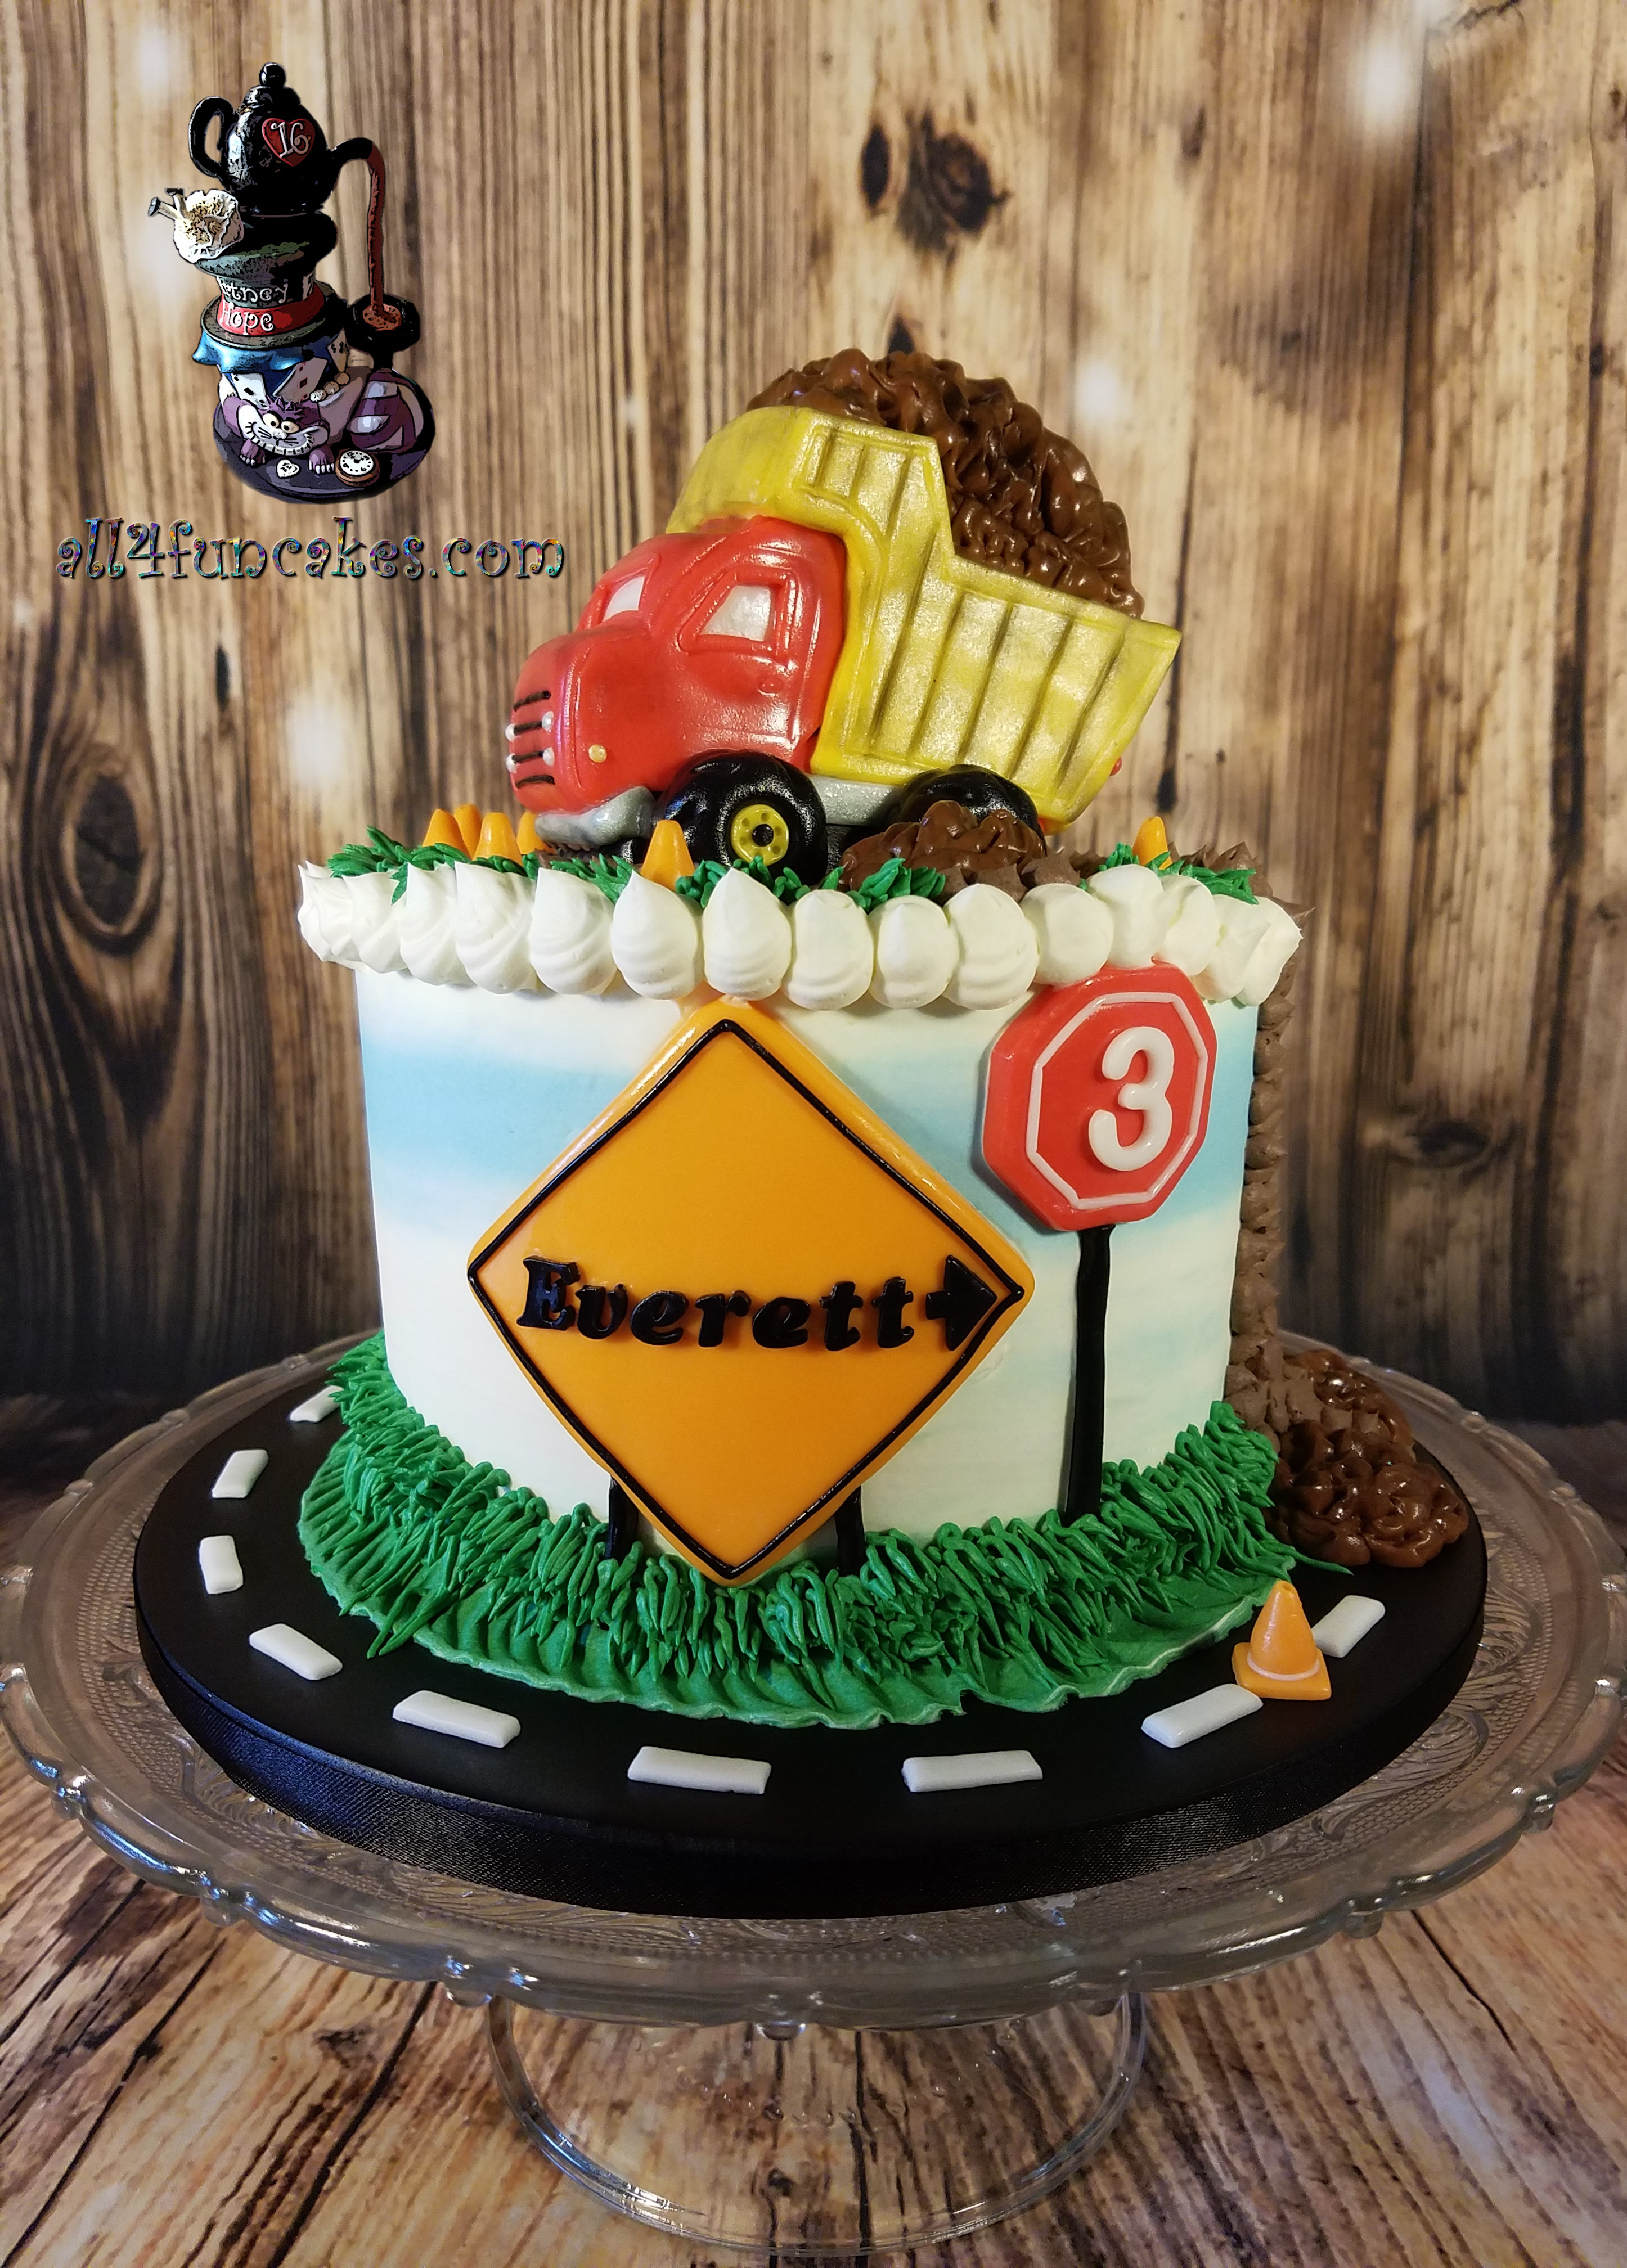 Special Occasion Dump Truck Construction Cones Mudslide Road Closed Street Signs Birthday Cake by All4Fun Cakes LLC 2017